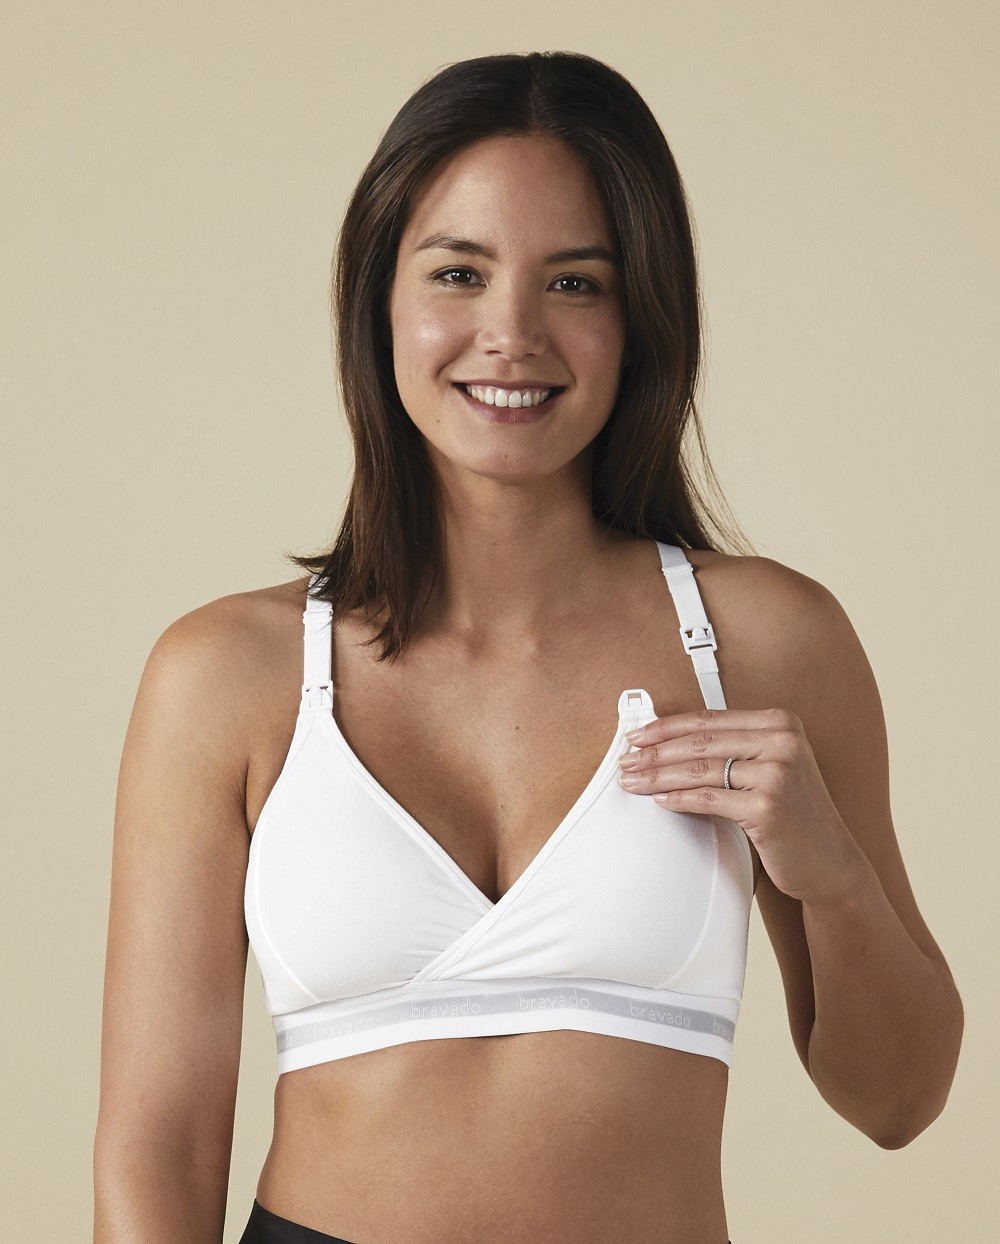 8813d912157 Bravado Original White Nursing Bra For Cups B-D Sizes